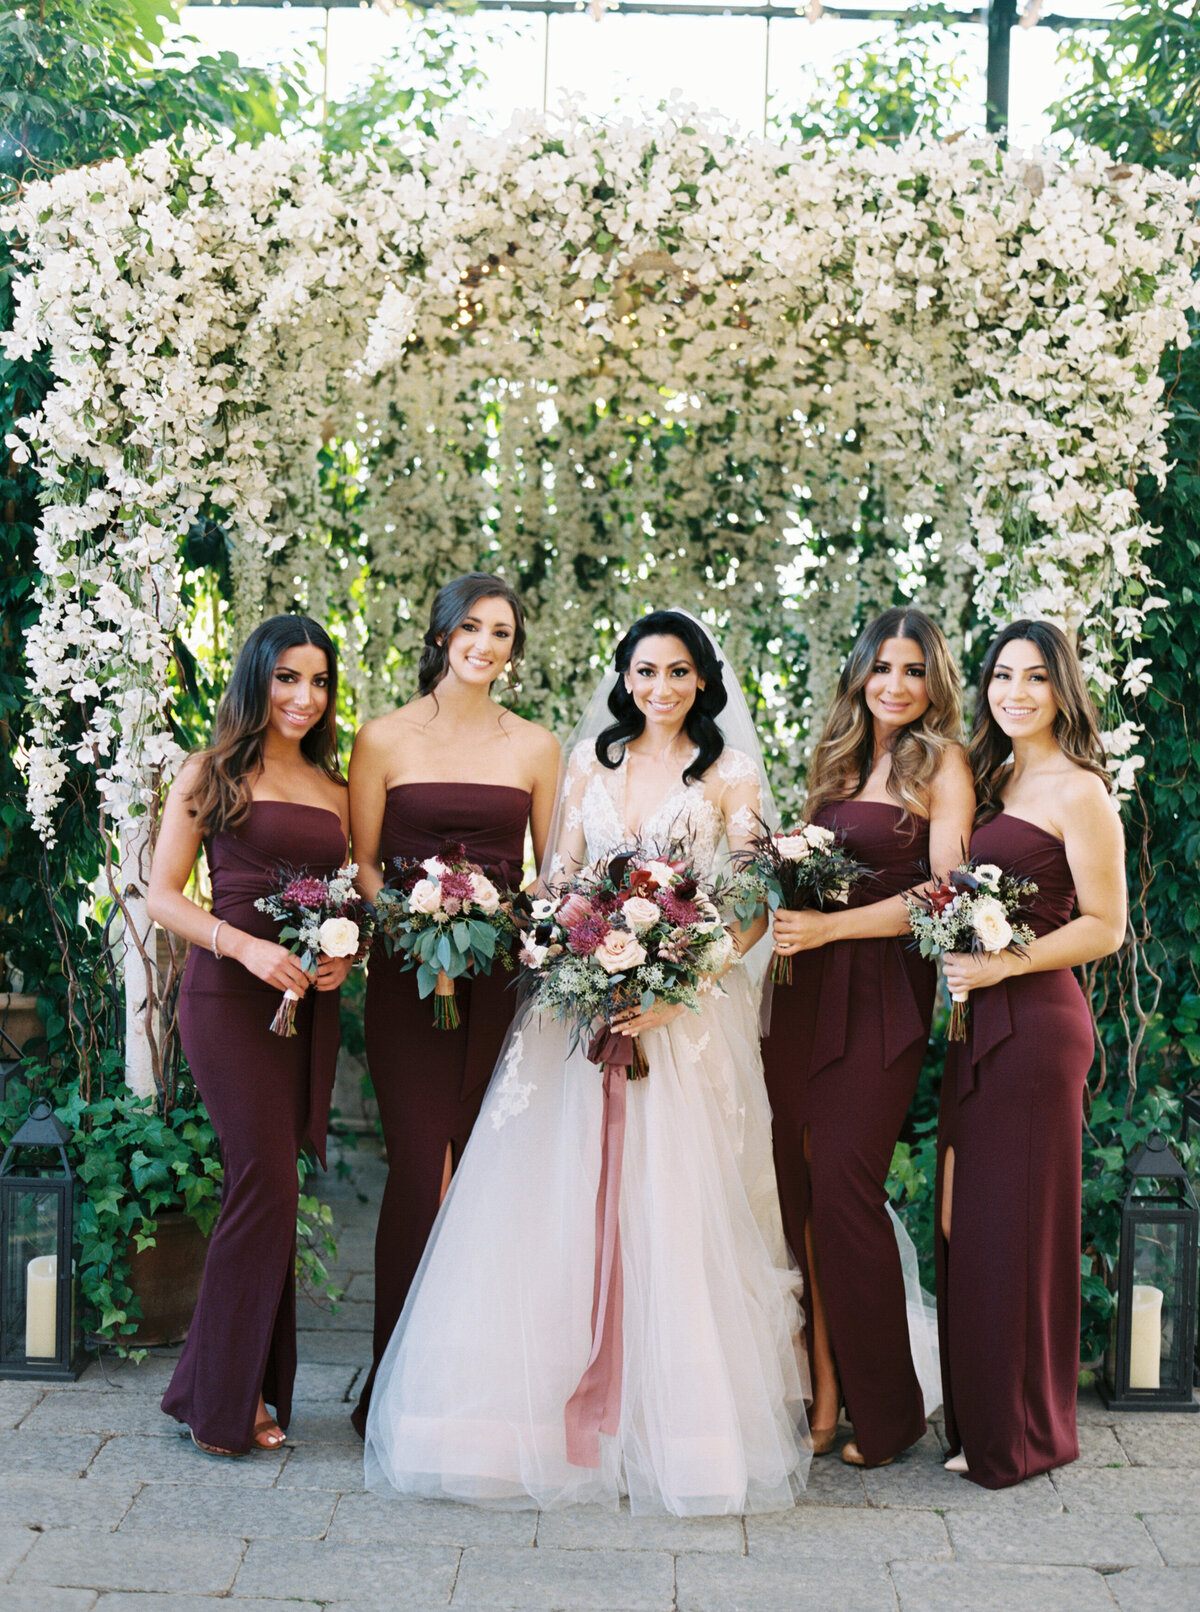 Kaylea Moreno_wedding gallery - Rami-Cassandra-Wedding-krmorenophoto-304